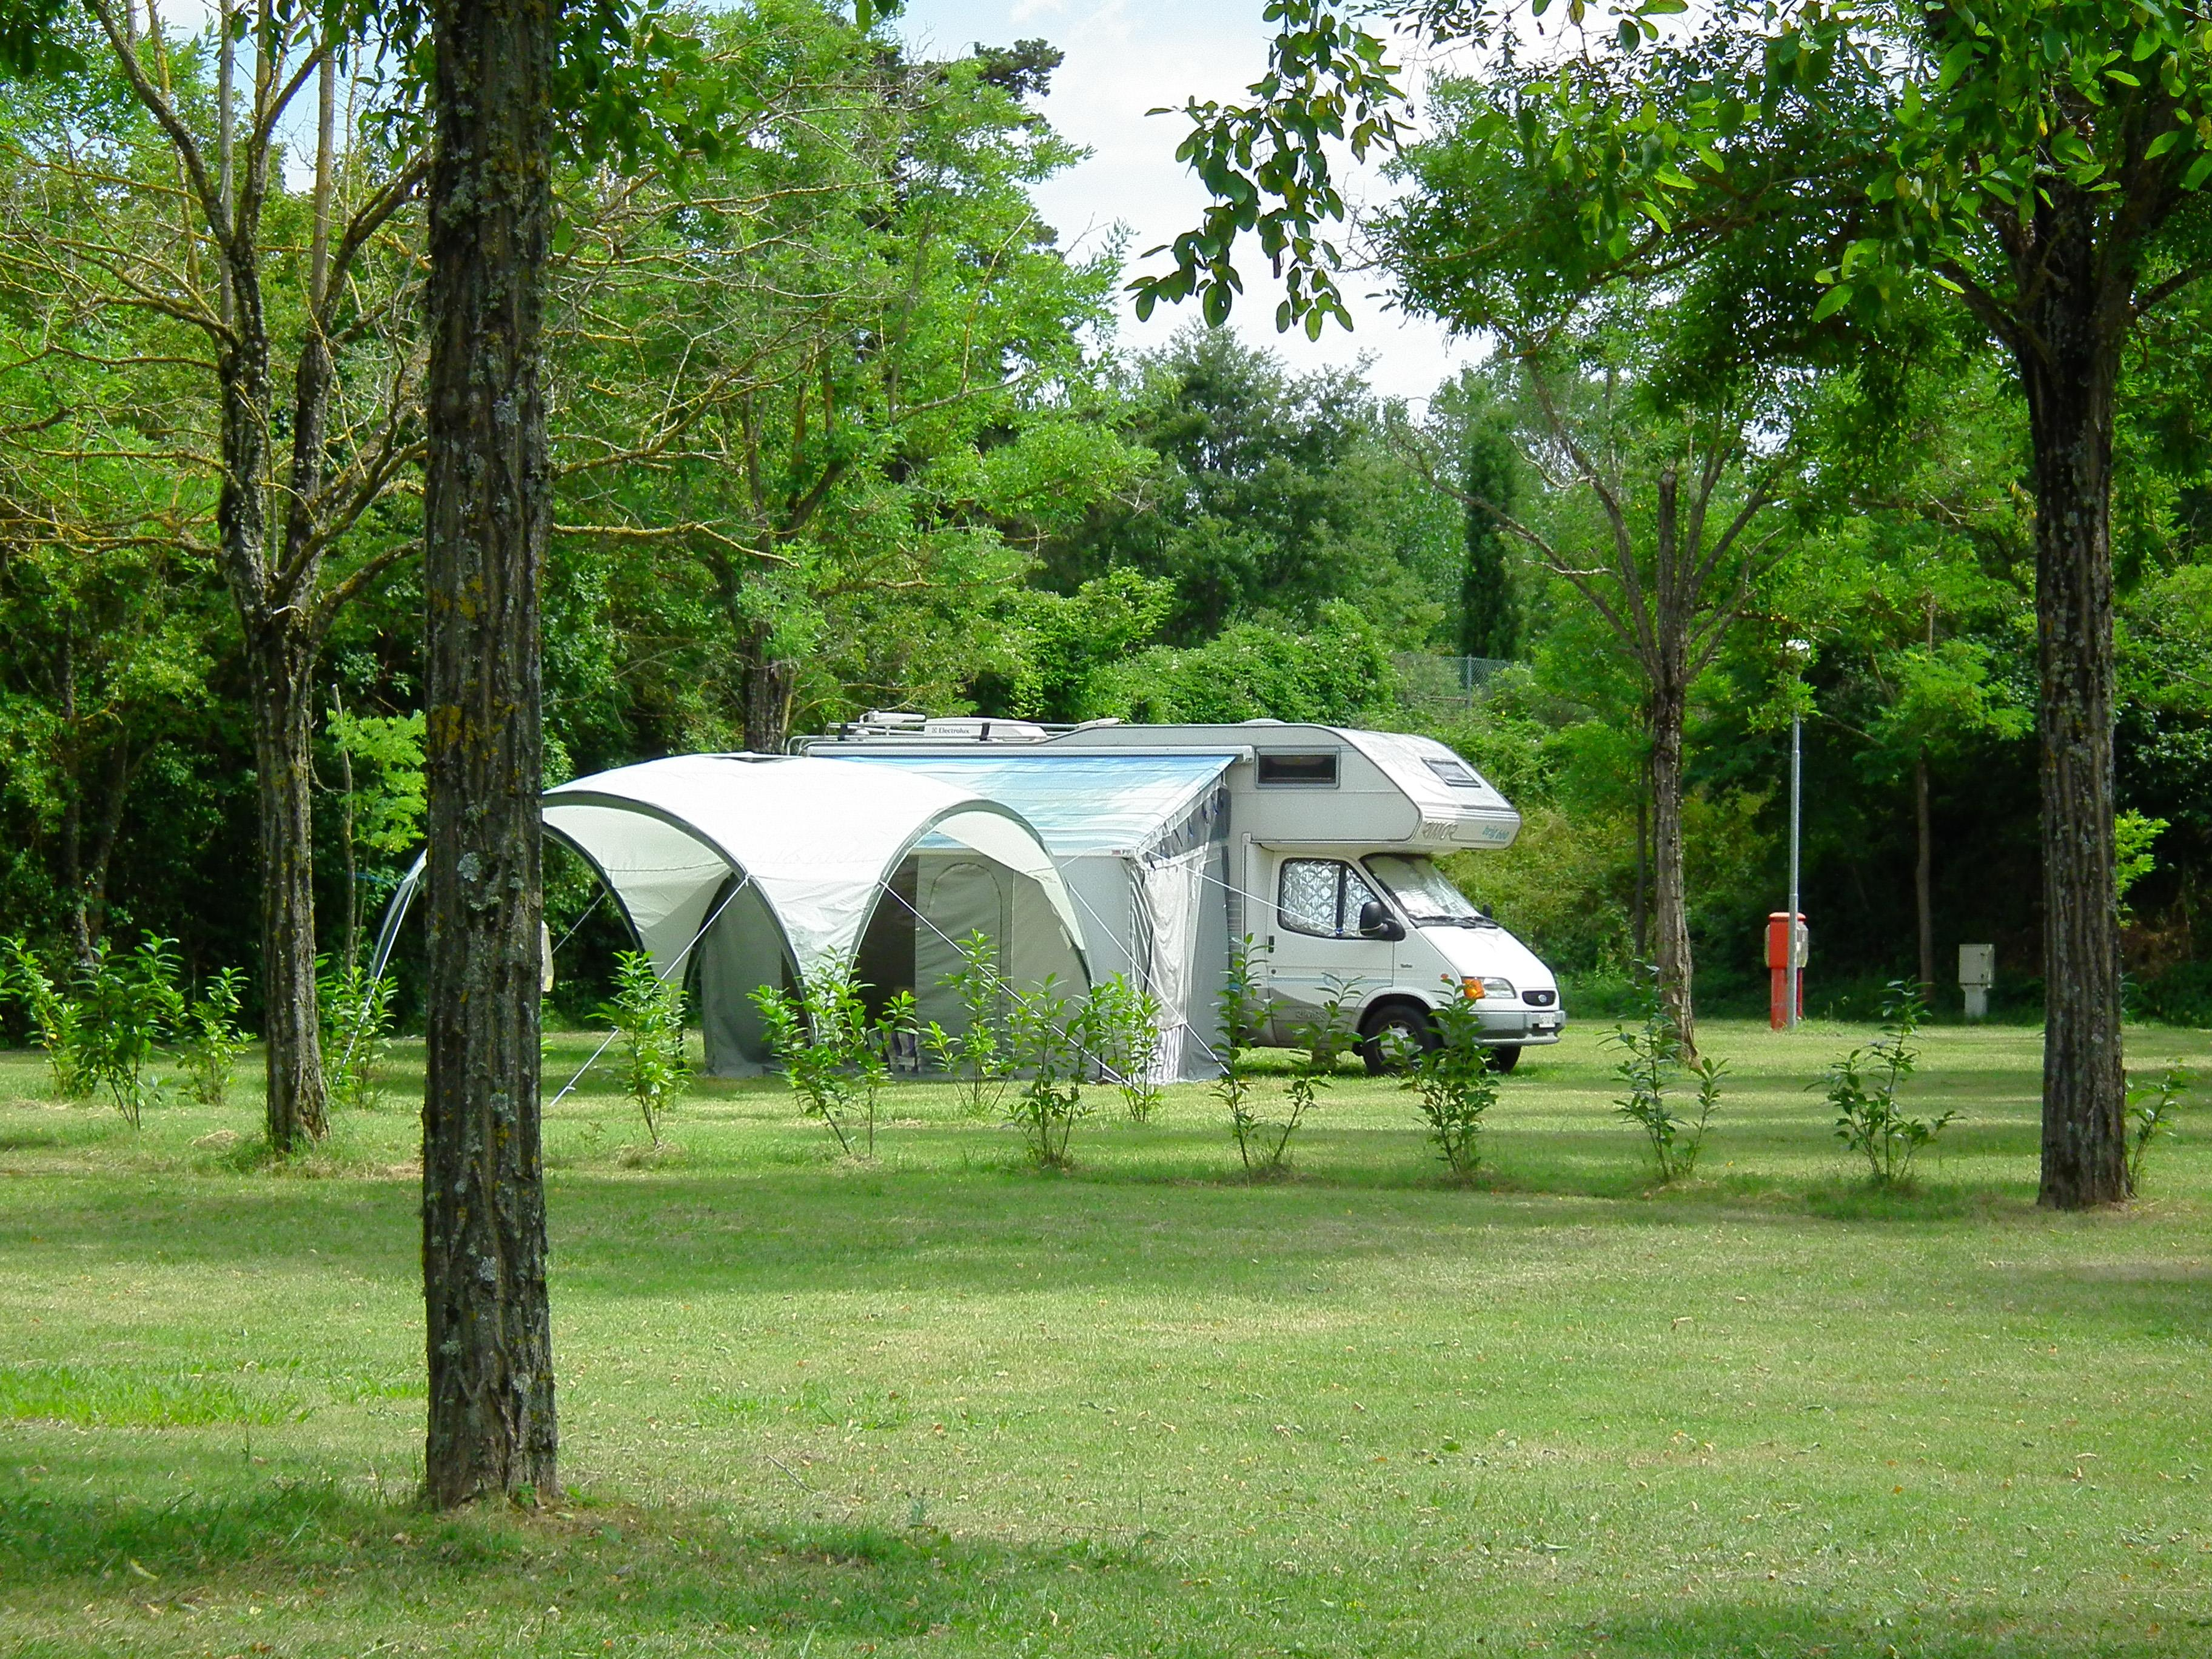 Pitch camping car for Camping parco delle piscine sarteano